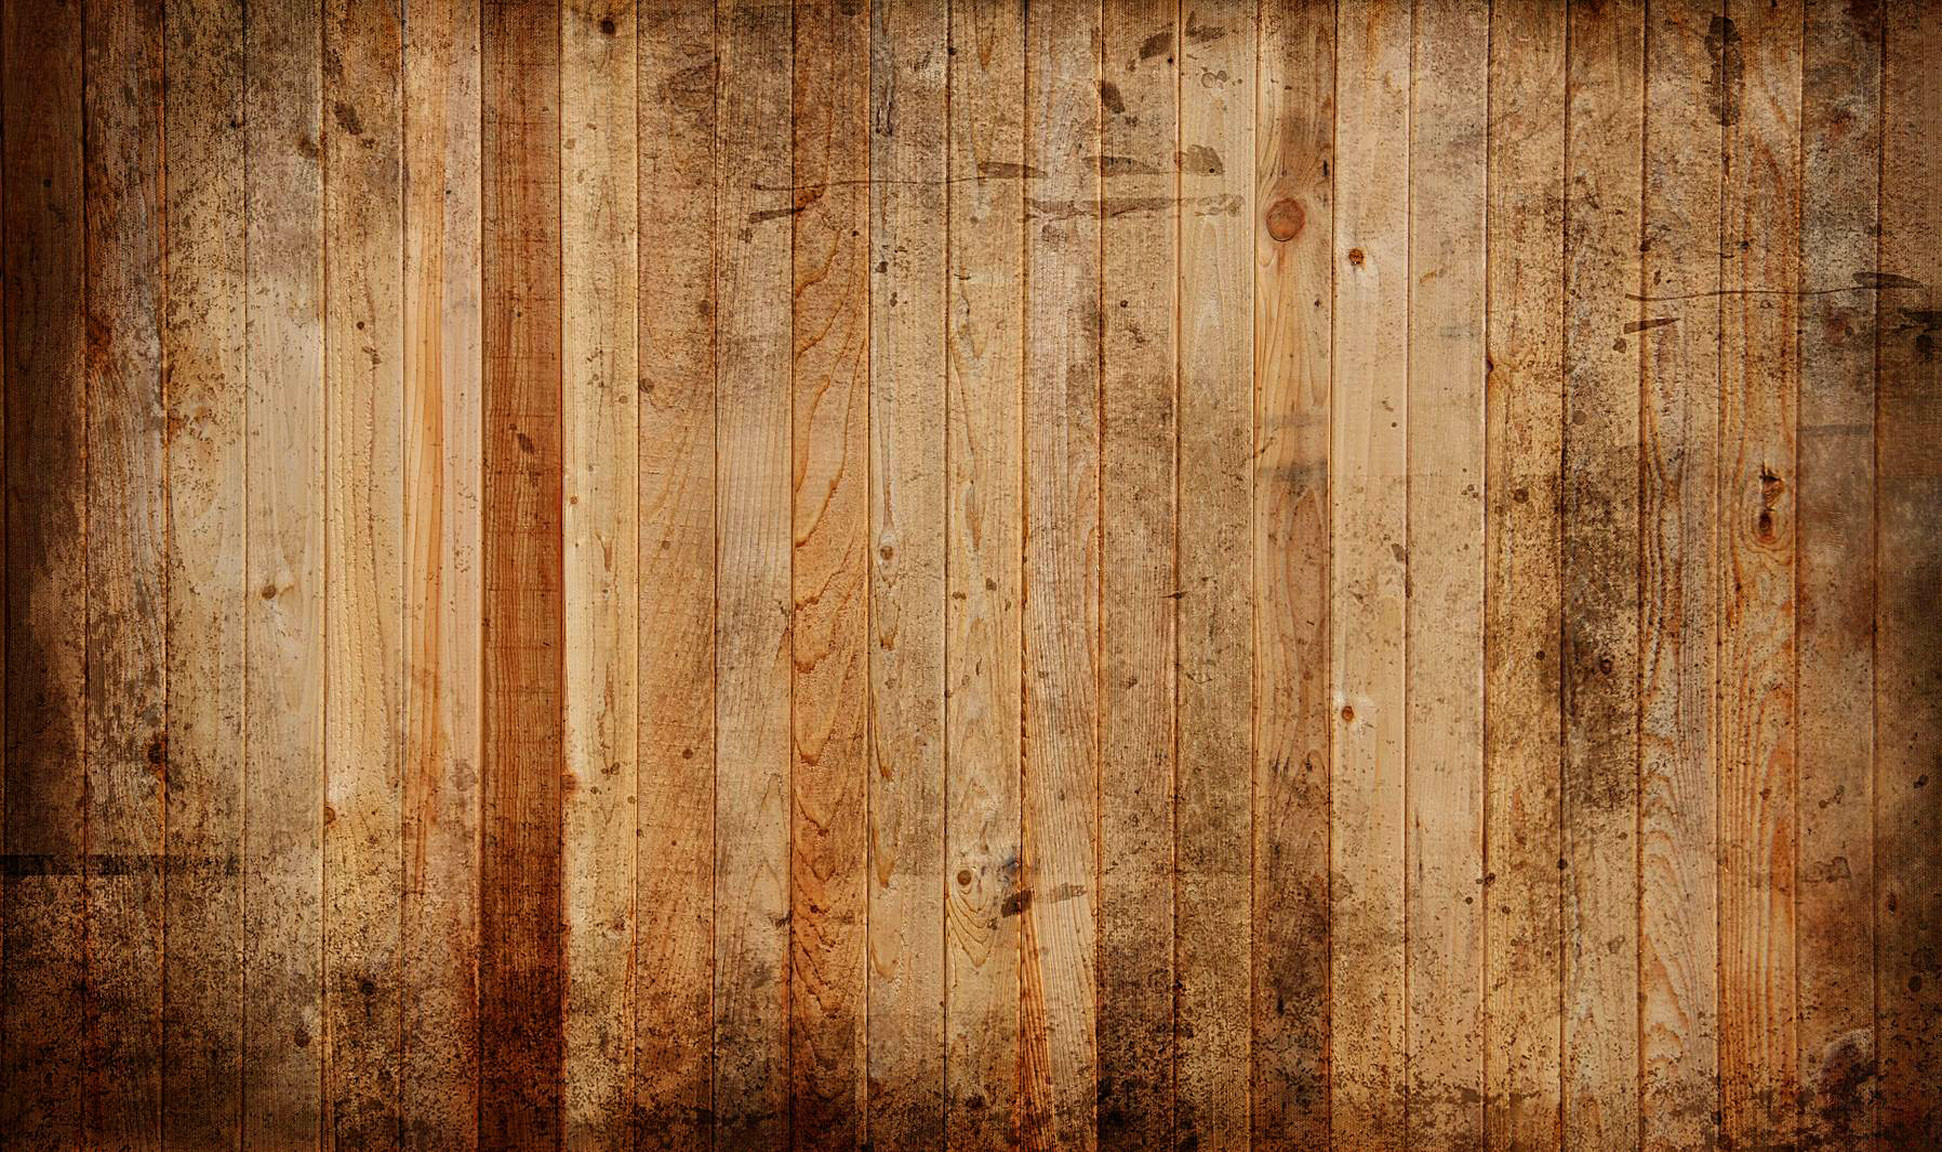 1942x1152 Rustic Wood Wallpaper Widescreen Brown 1920x1080 Iphone Teal Light